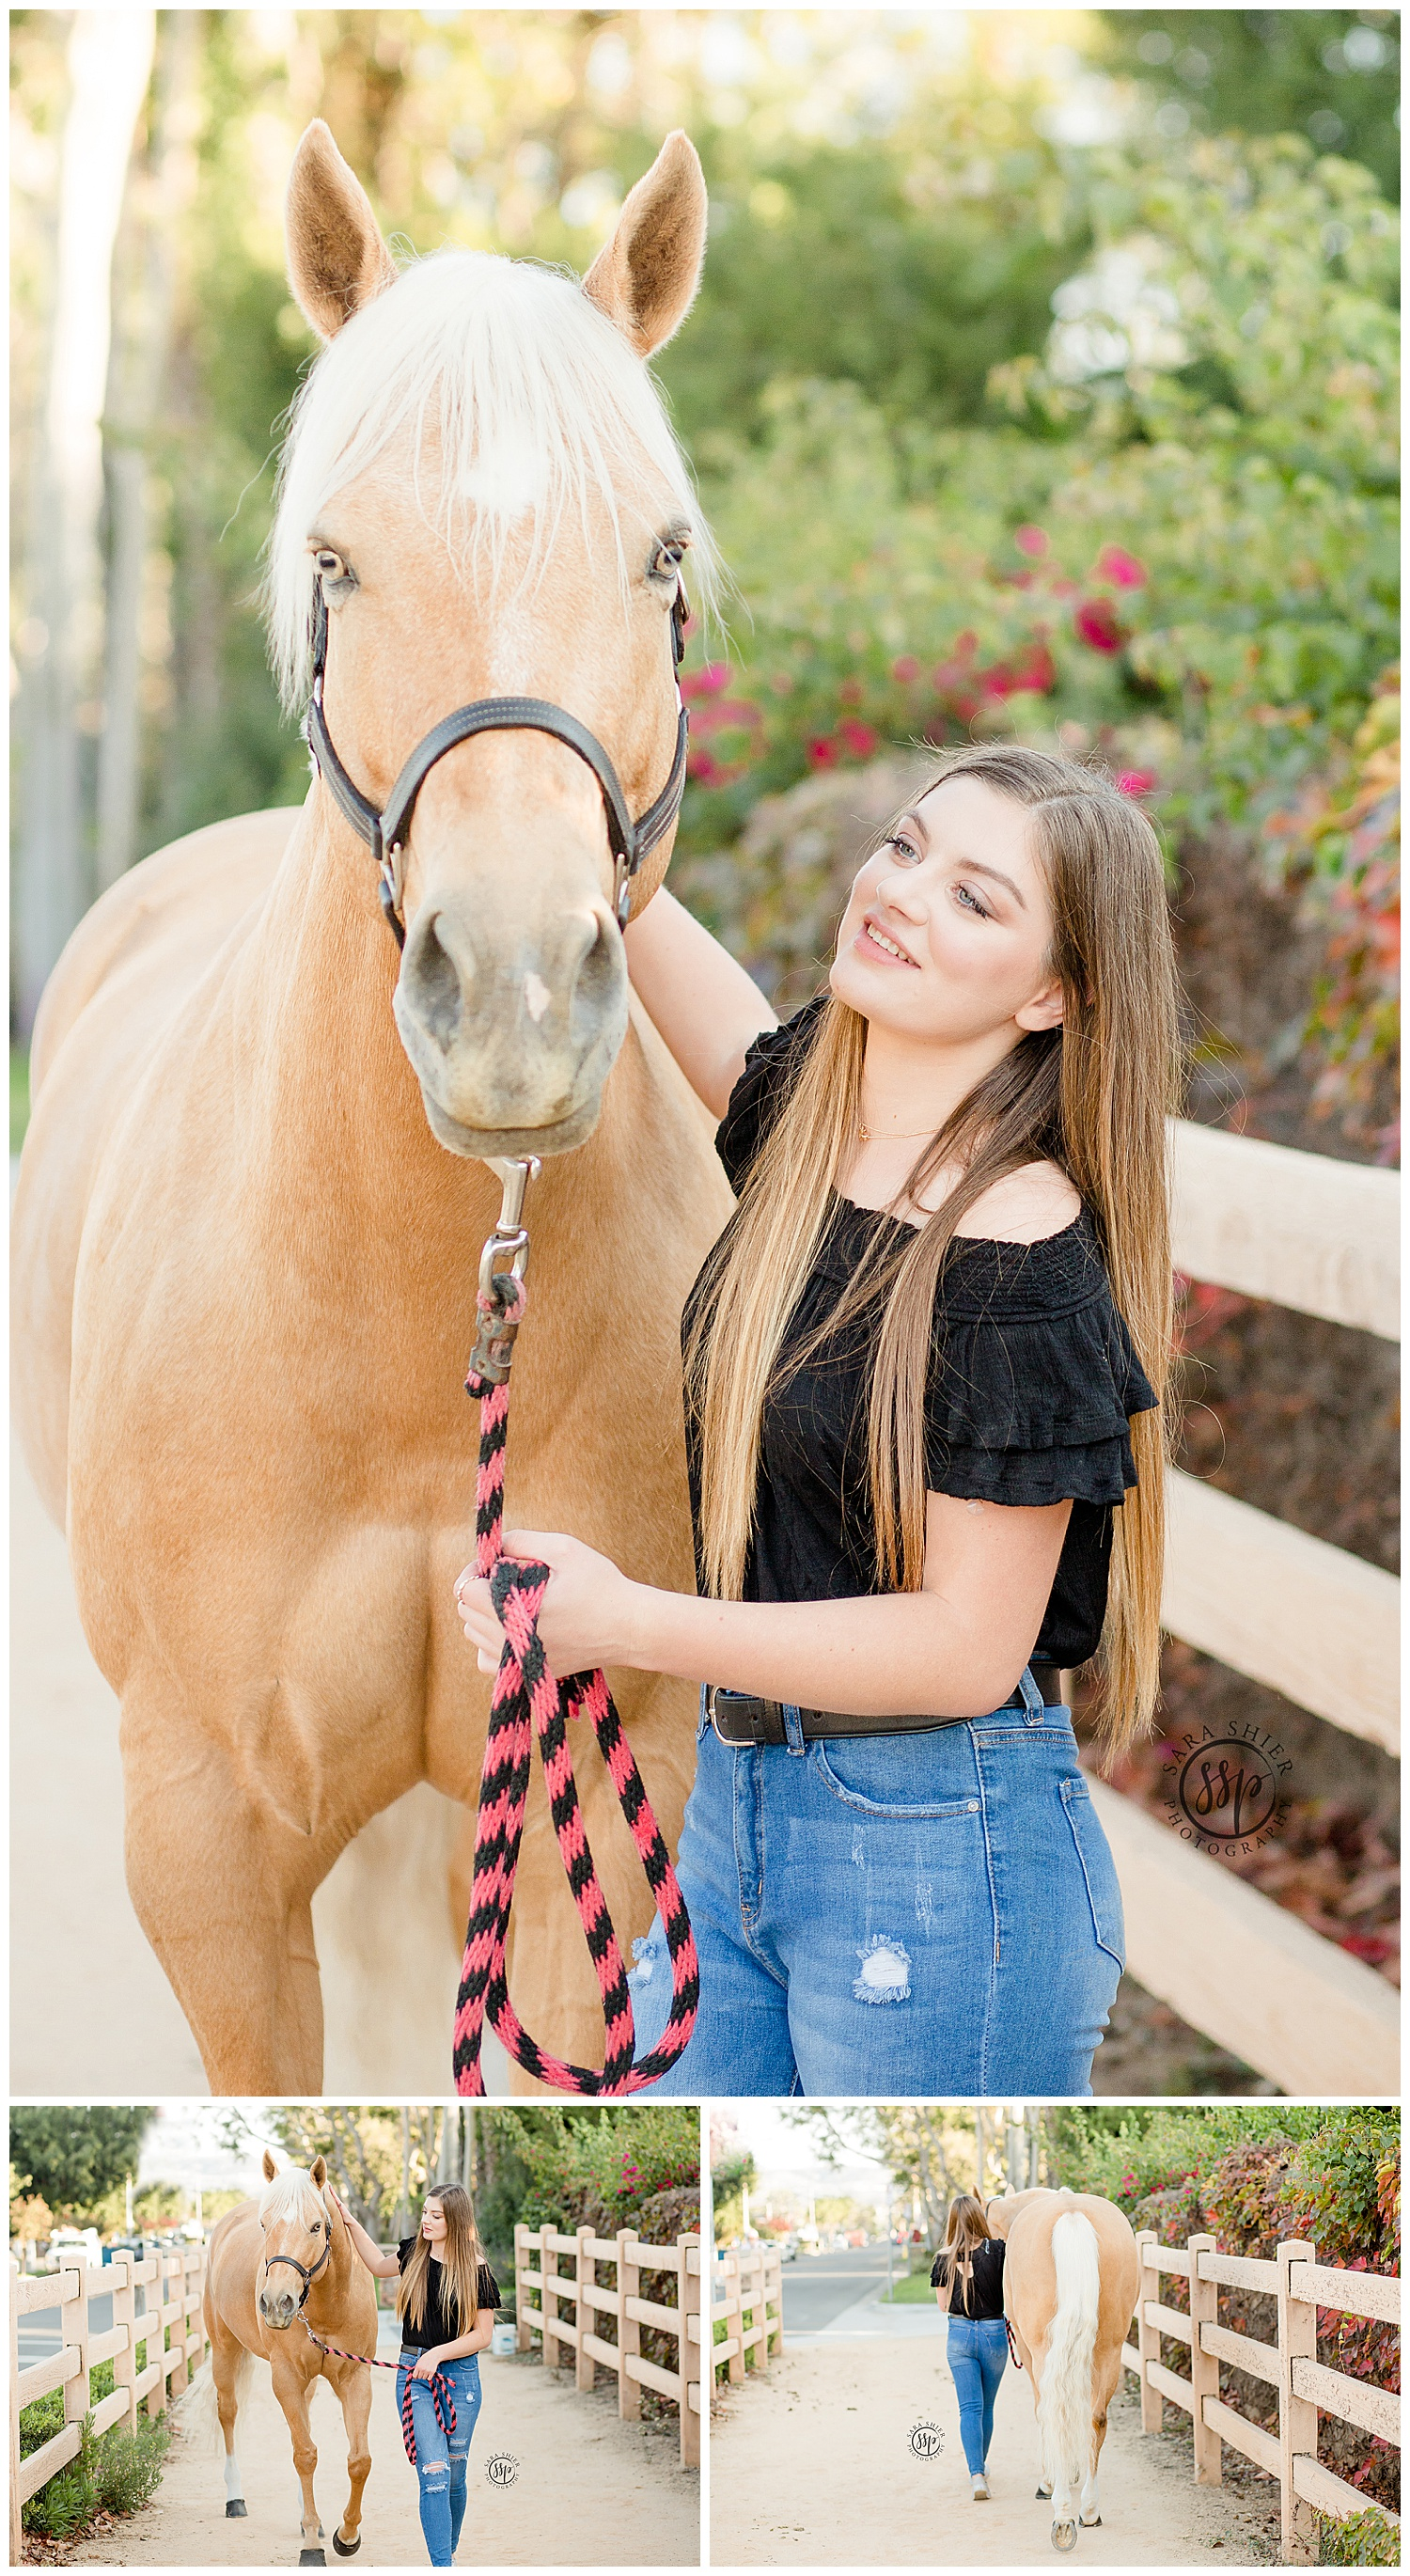 Black Background Horse Rider Equine Photographer Southern California Sara Shier Photography SoCal Equestrian Cowgirl_0374.jpg